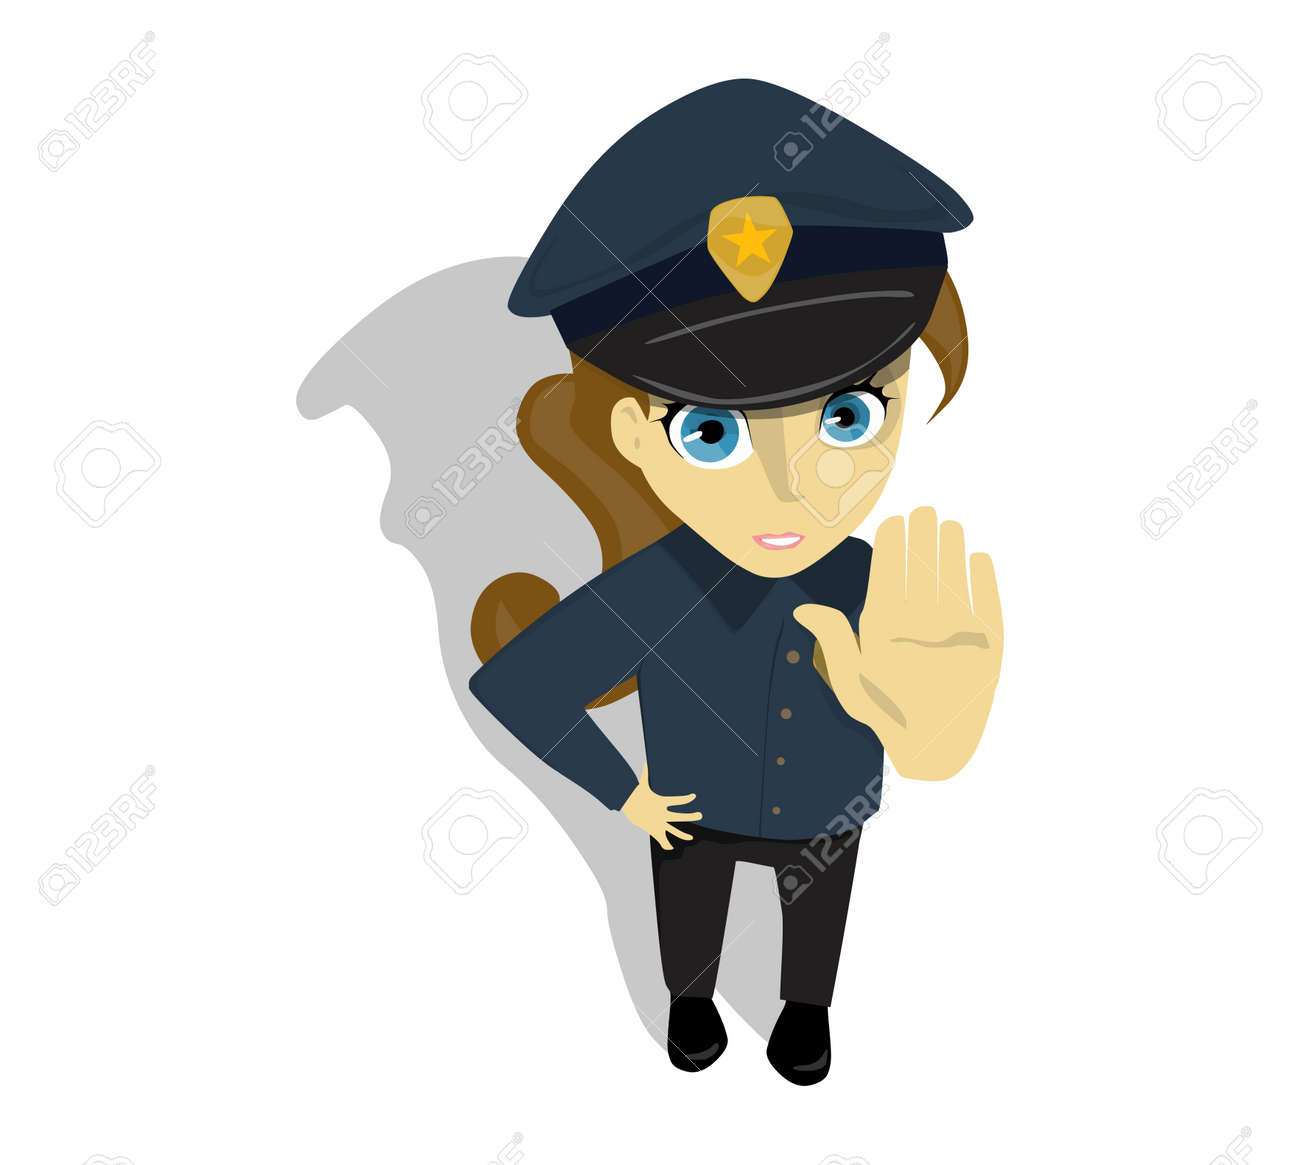 Woman Police Officer Stock Vector - 10605968